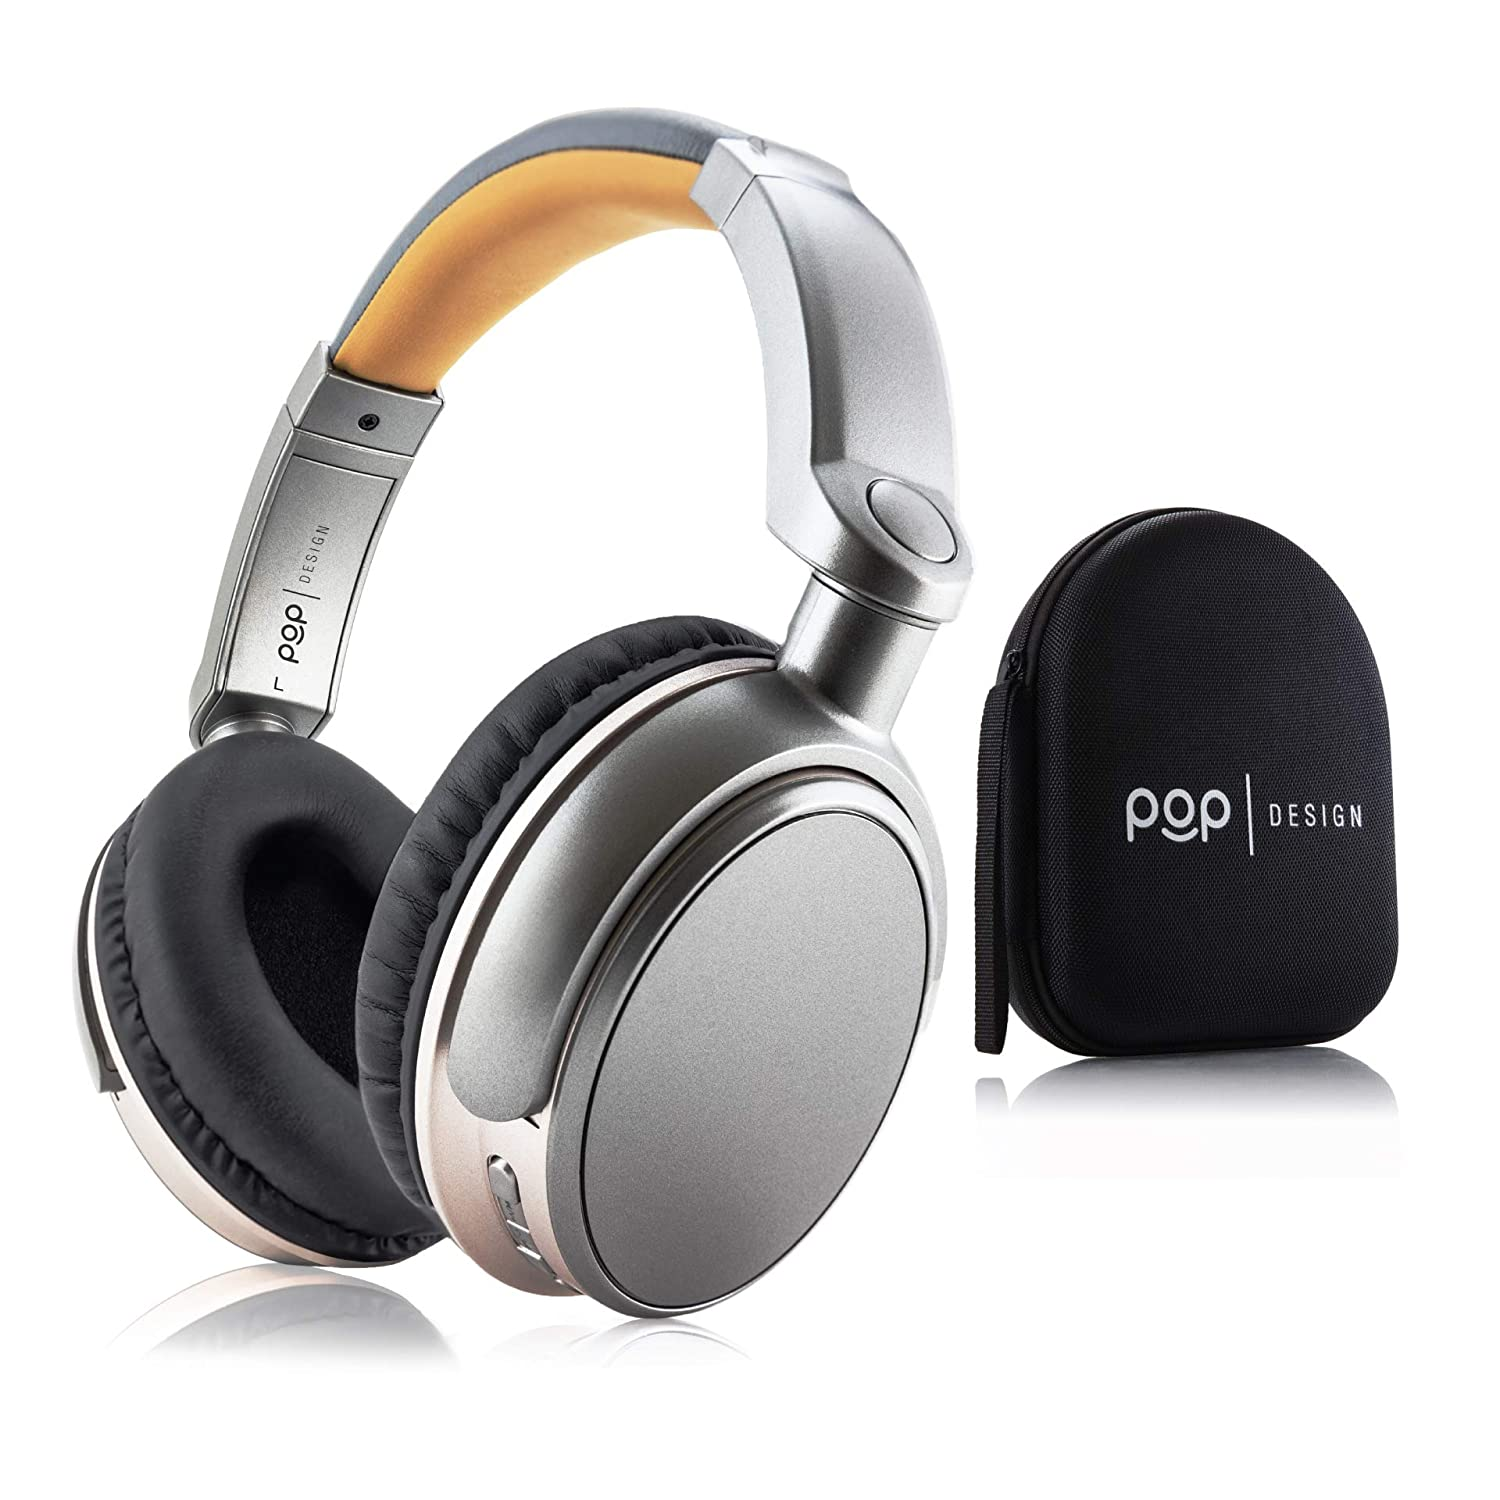 5e659e4d3f3 Over Ear Wireless Bluetooth Stereo Headphones | Built in Mic and Optional  Wired Mode | 16 Hour Battery Life | Compatible with All-new Kindle  Paperwhite ...